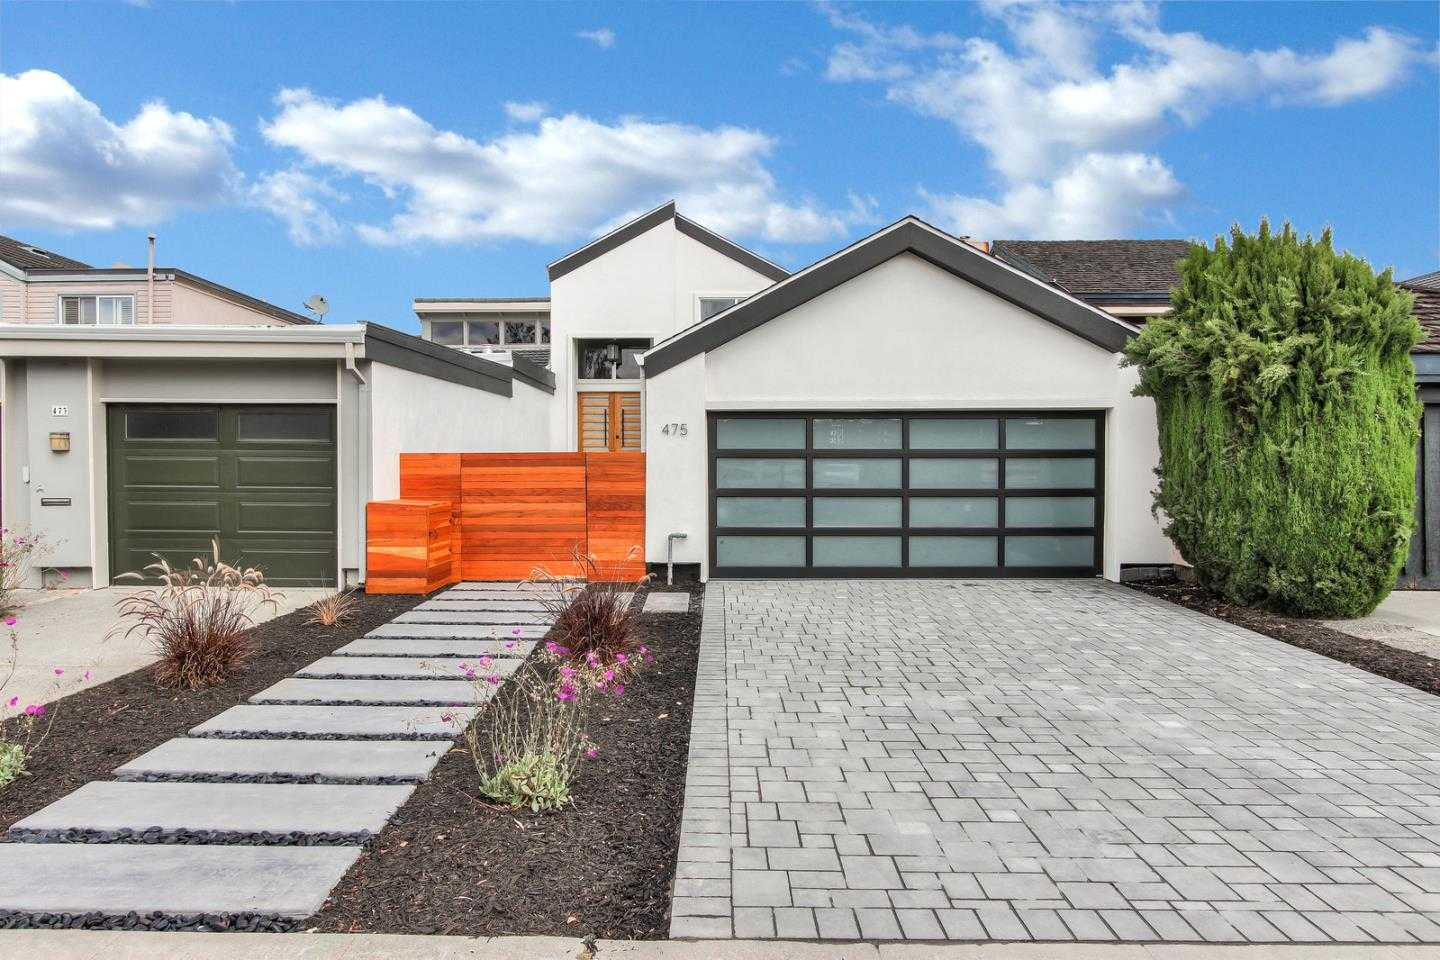 $1,858,000 - 3Br/3Ba -  for Sale in Redwood City